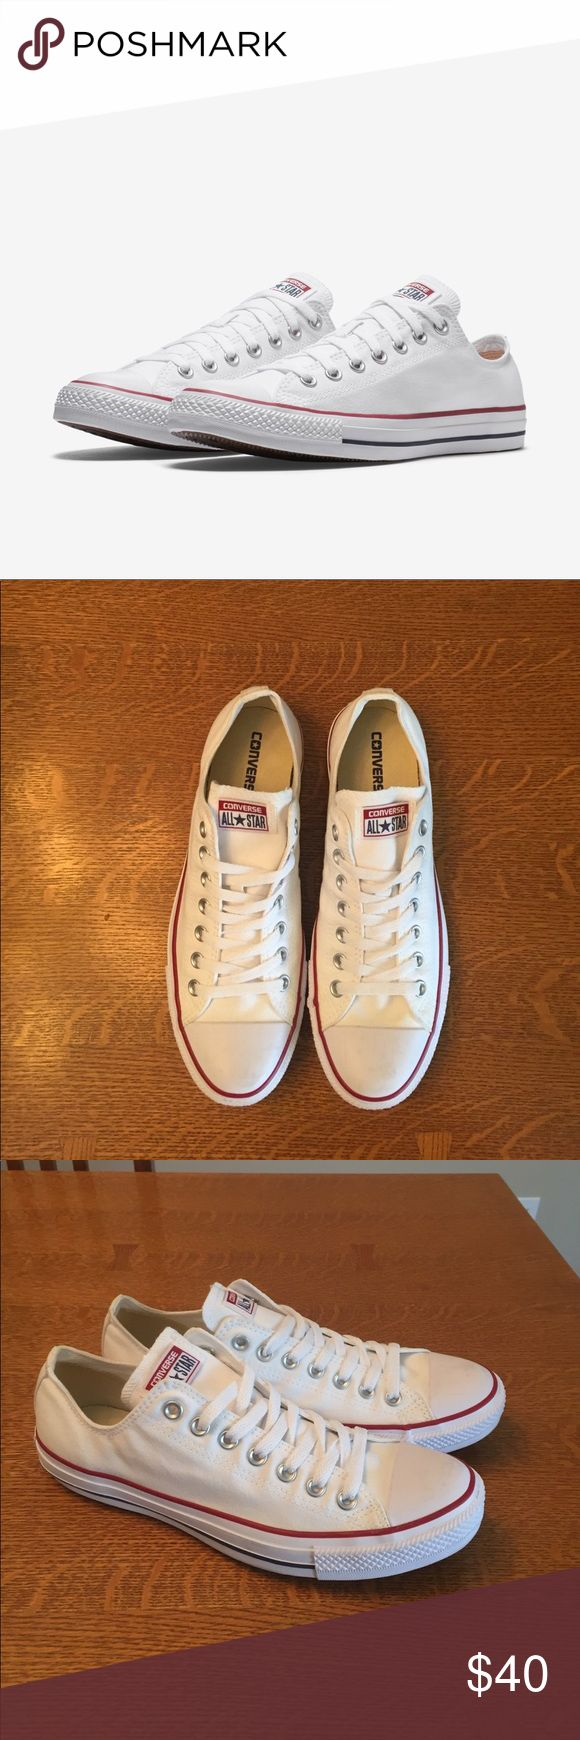 White converse Chuck Taylor All Star Only worn once! Great condition on these classic Chuck Taylor All Star converse lows! Great shoes in even better condition! Converse Shoes Sneakers